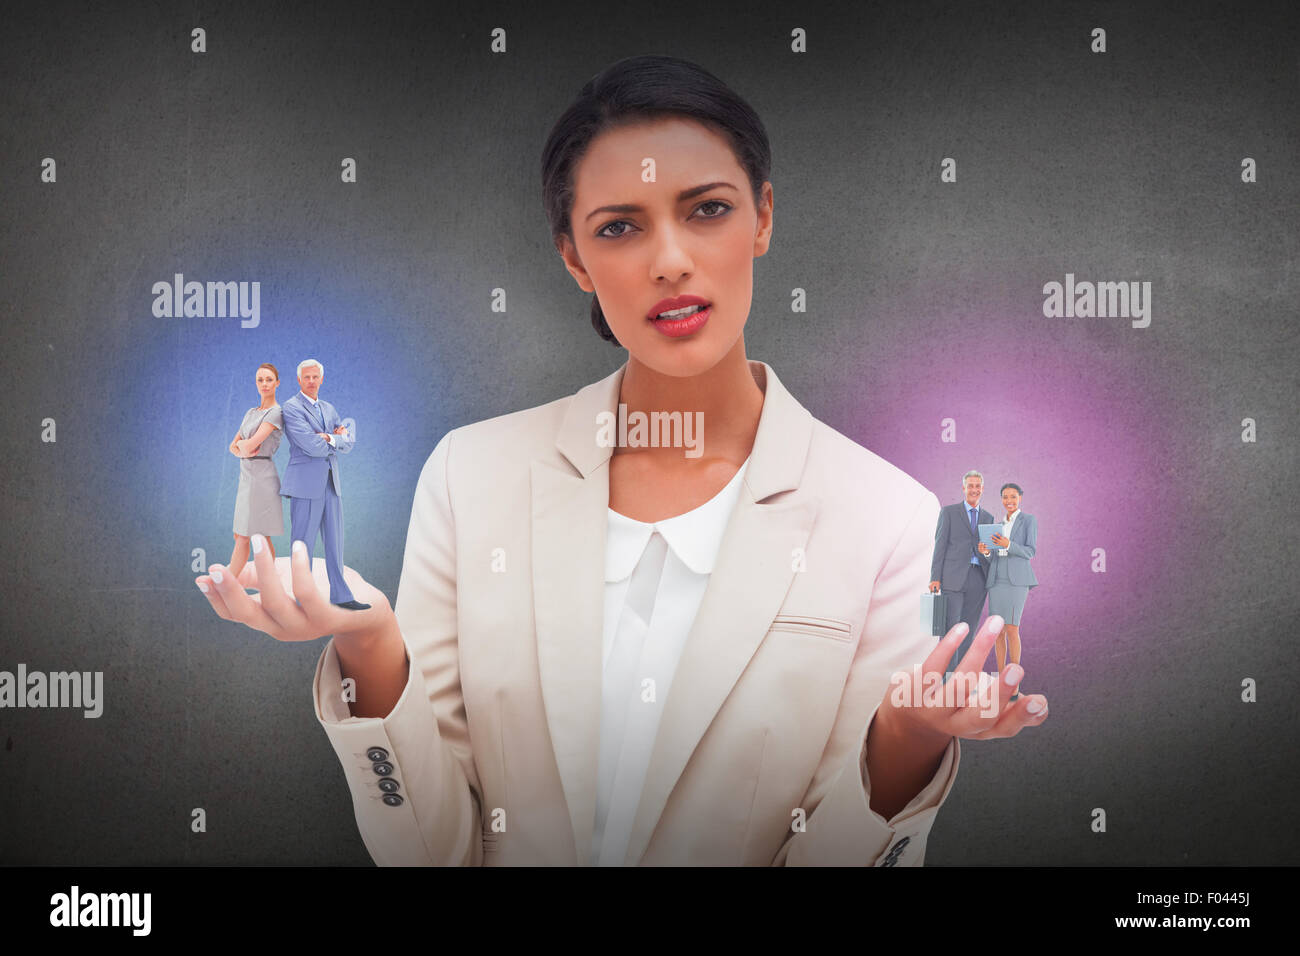 Composite image of serious businessman standing back to back with a woman - Stock Image